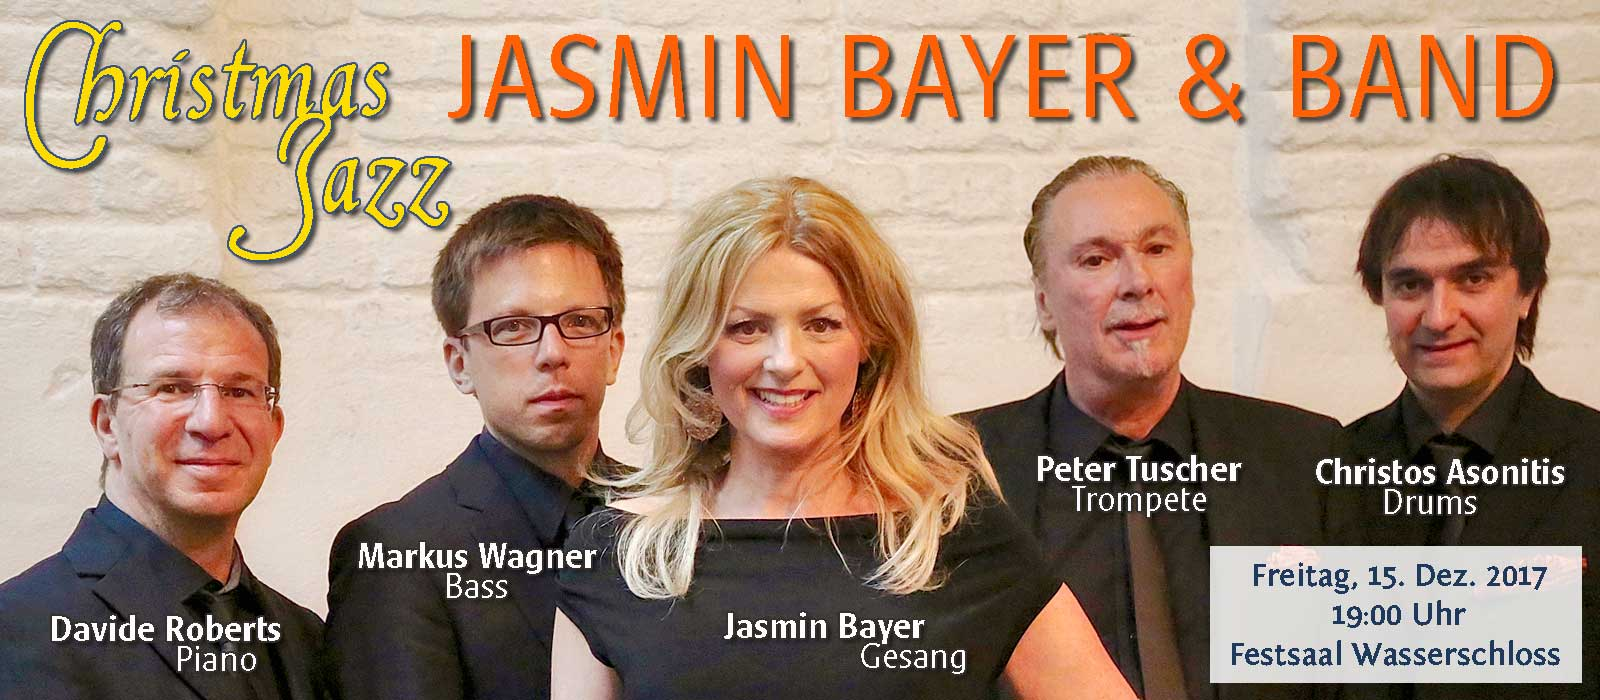 JASMIN BAYER & BAND